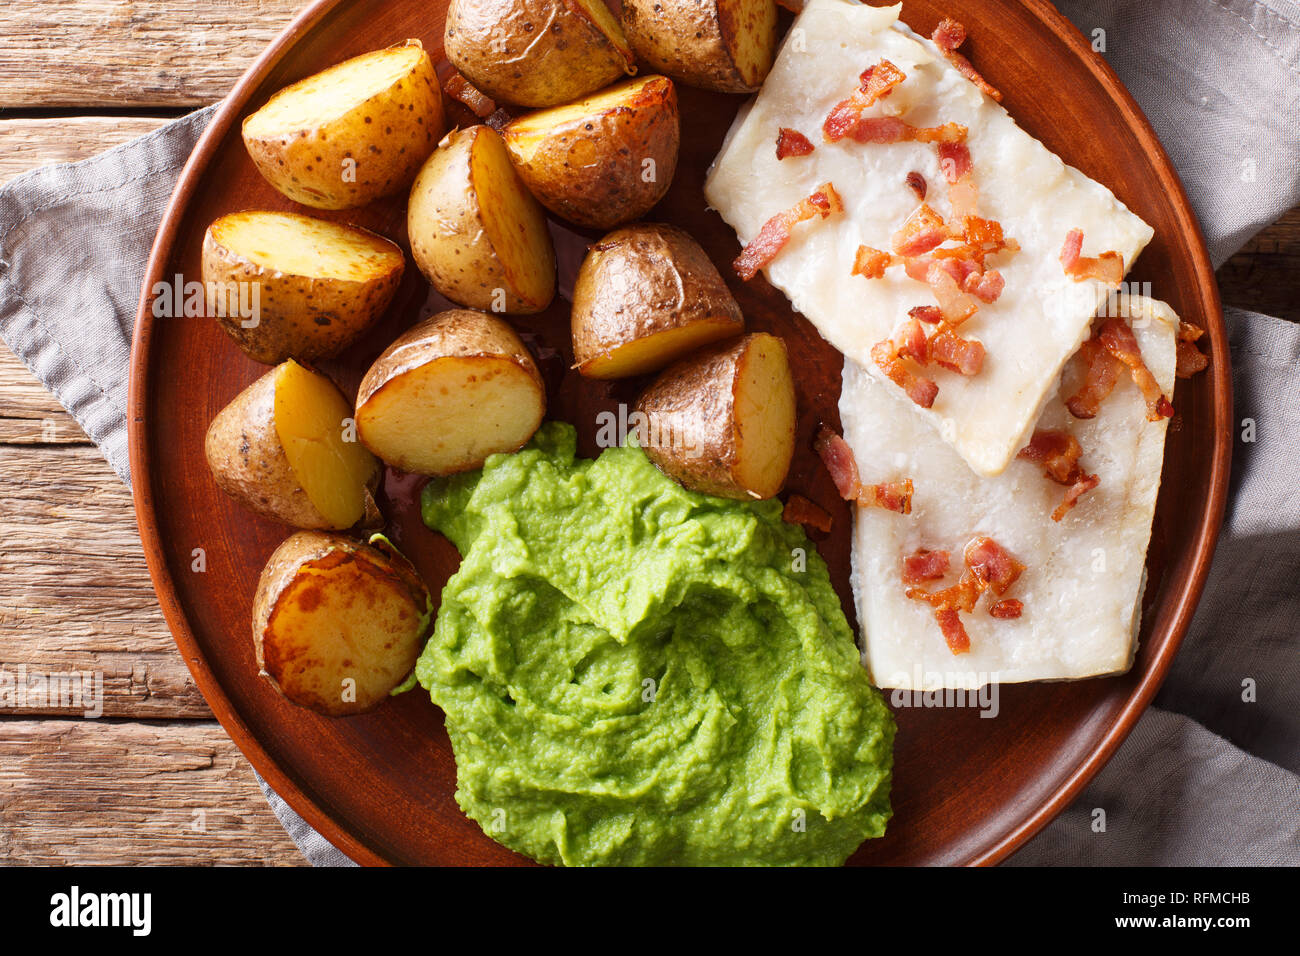 Organic codfish Lutefisk with pea puree, baked potatoes and bacon close-up on a plate on the table. Horizontal top view from above - Stock Image